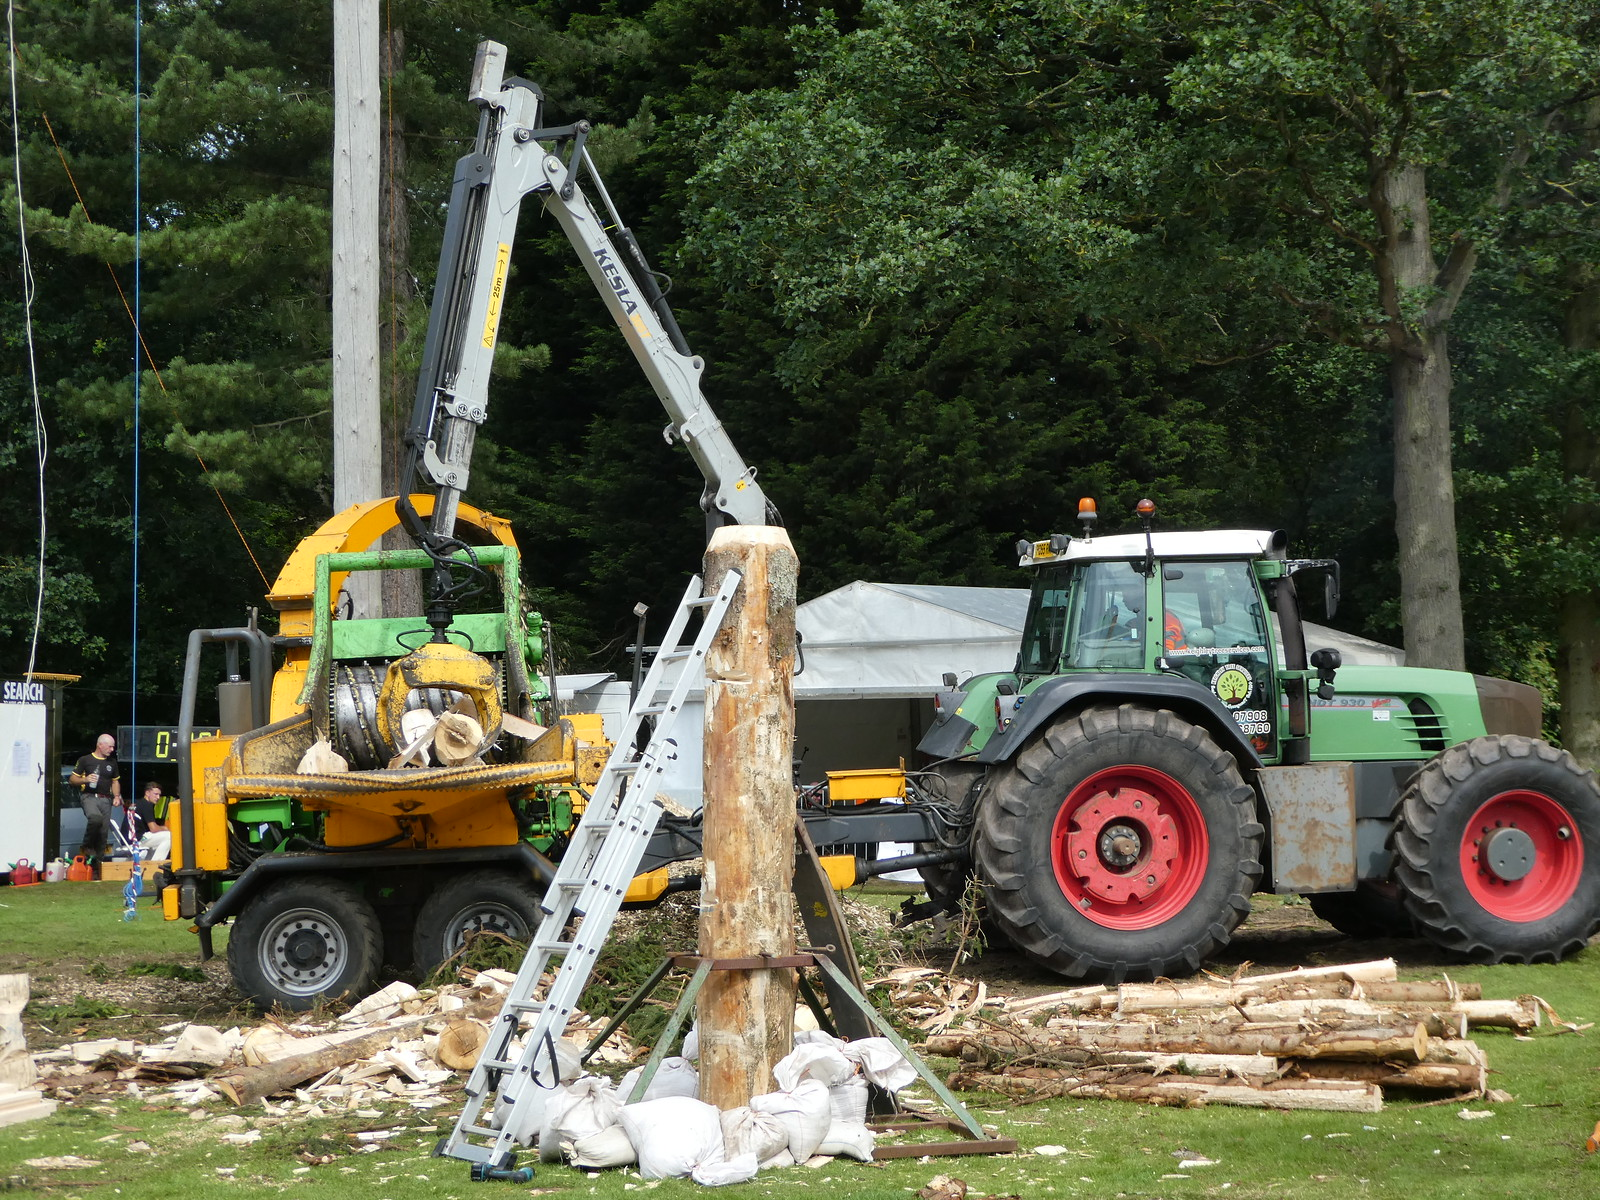 Forestry demonstration, Great Yorkshire Show, Harrogate